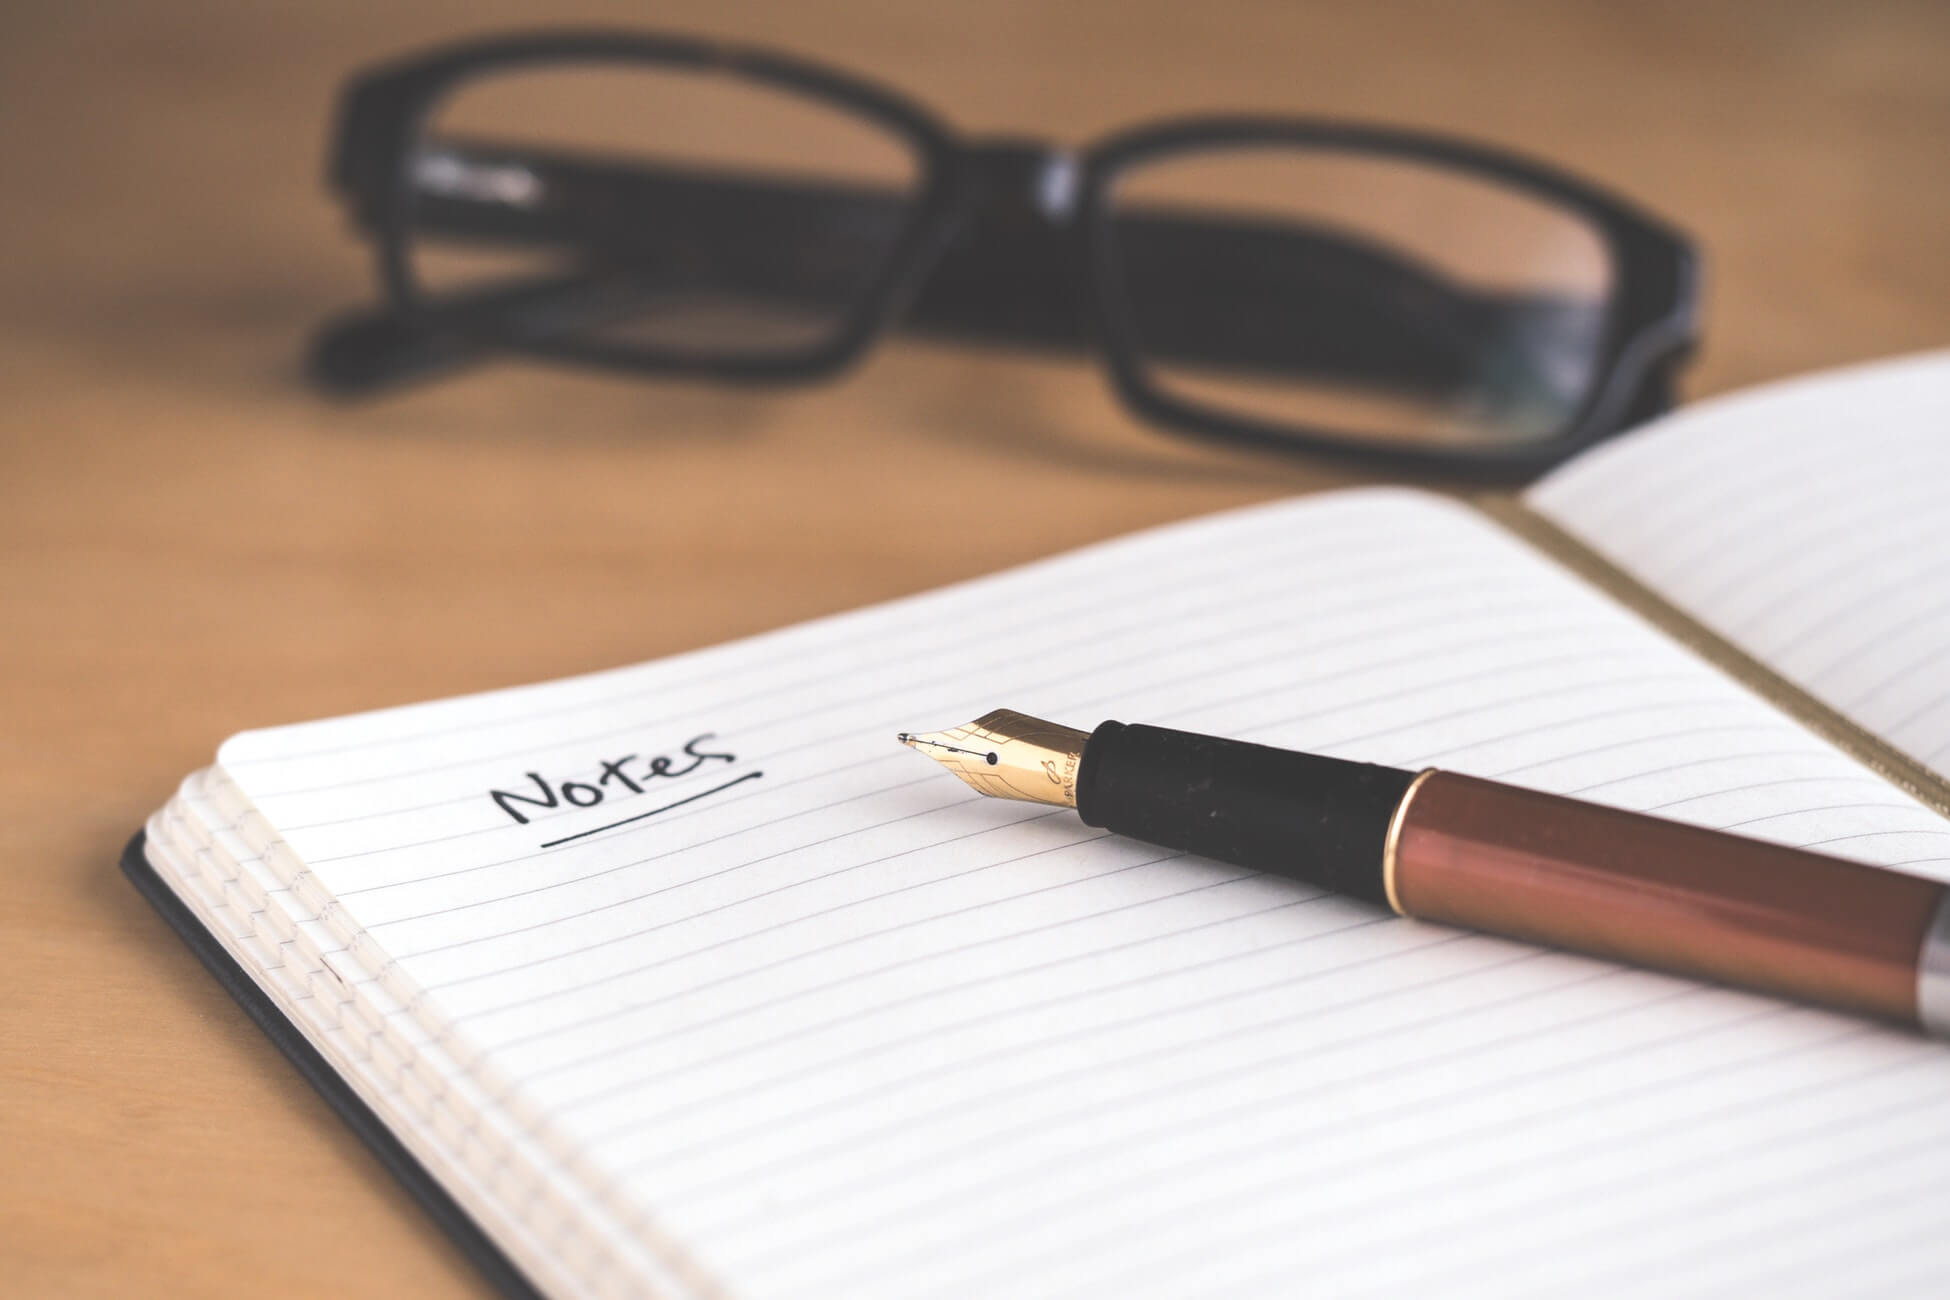 The Most Common Resume Mistakes to Avoid